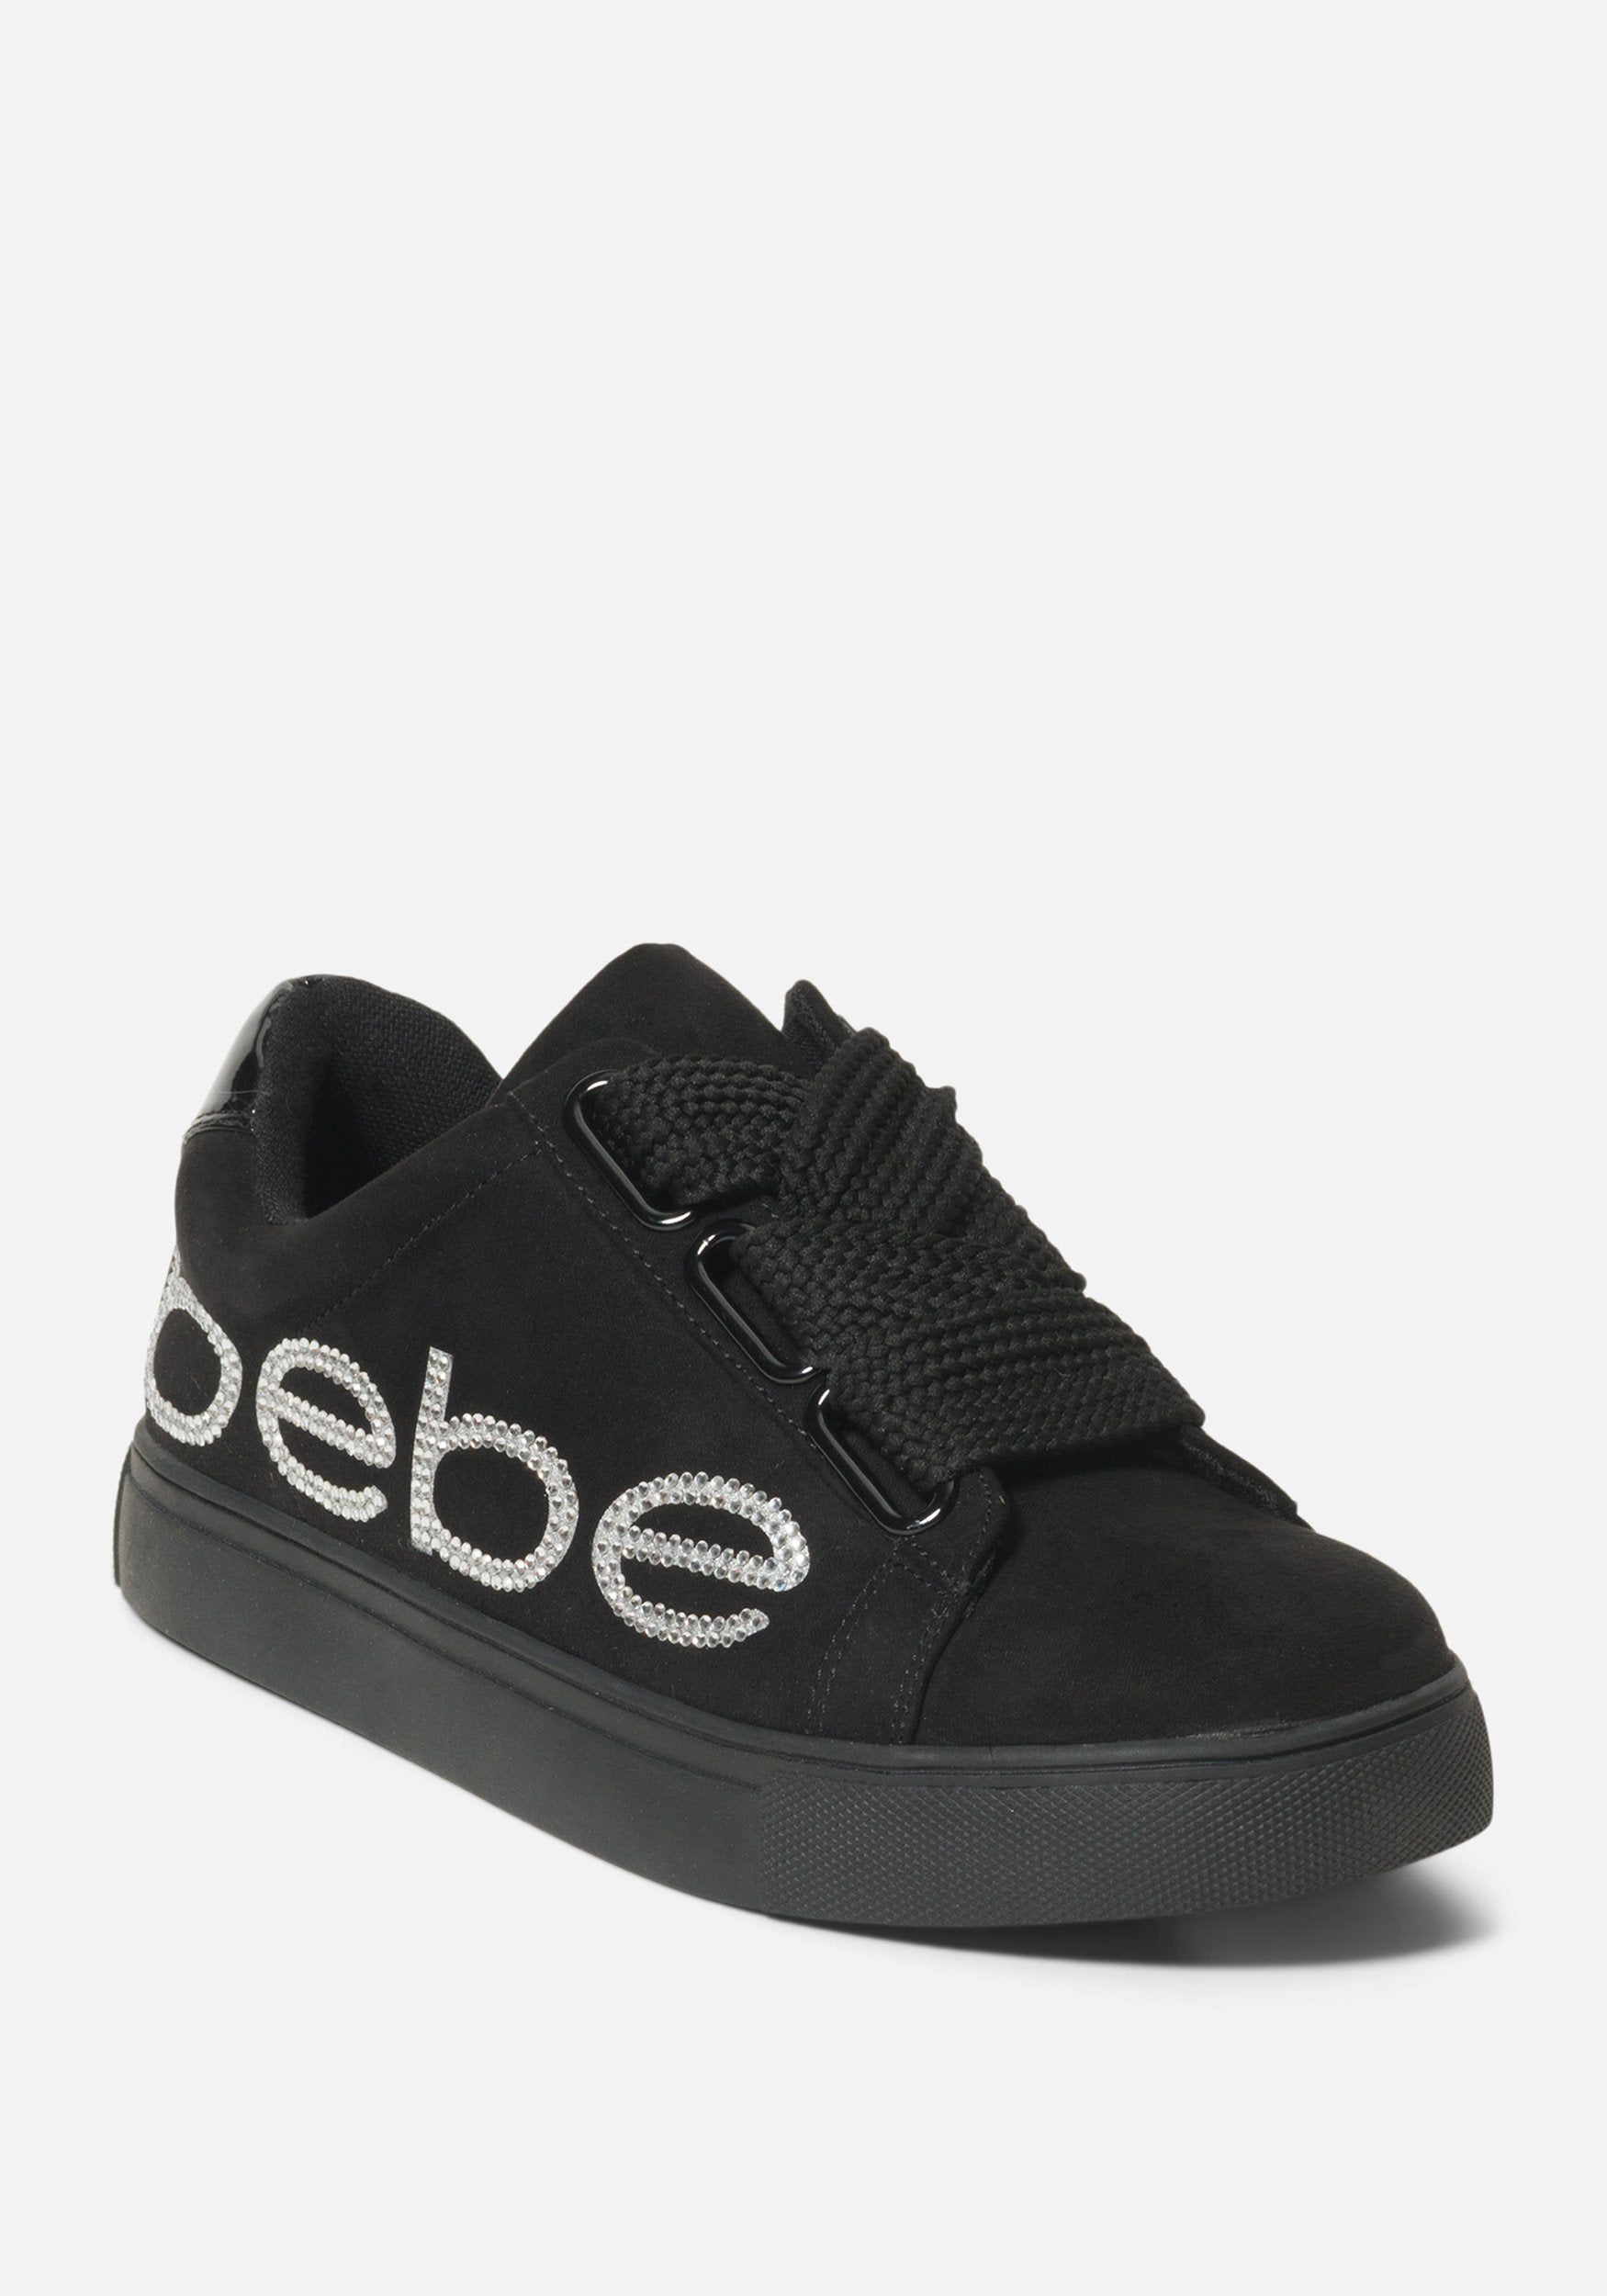 Women's Cabree Bebe Logo Sneakers, Size 6 in Black Synthetic